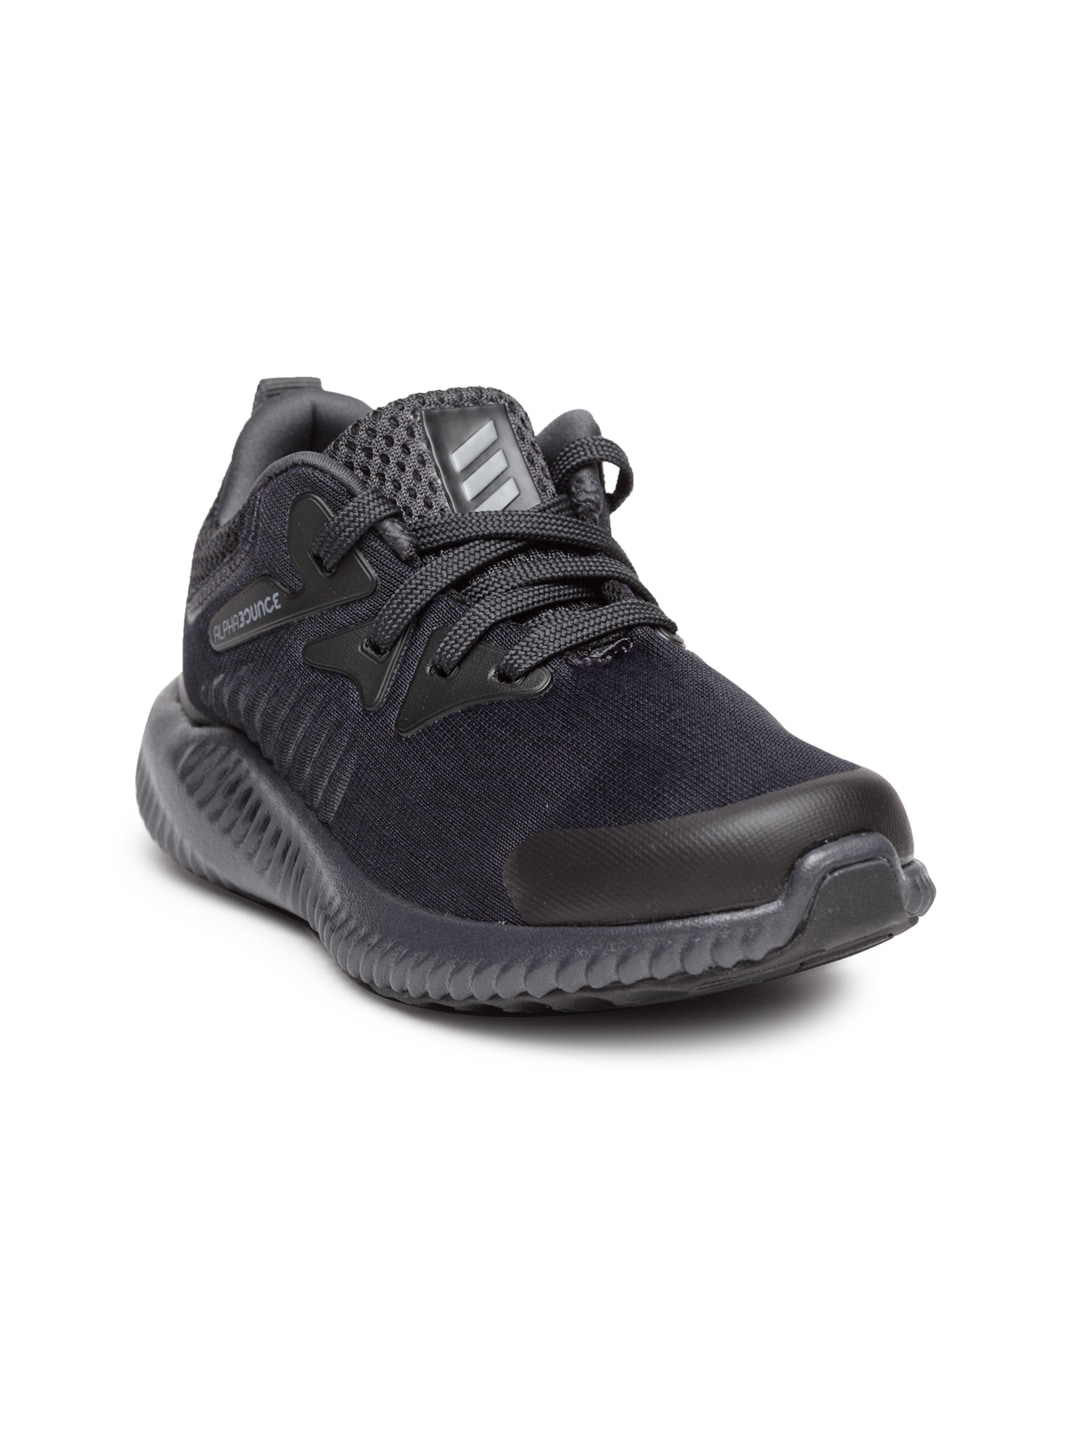 978c9d5924fe4 Alphabounce - Buy Alphabounce online in India